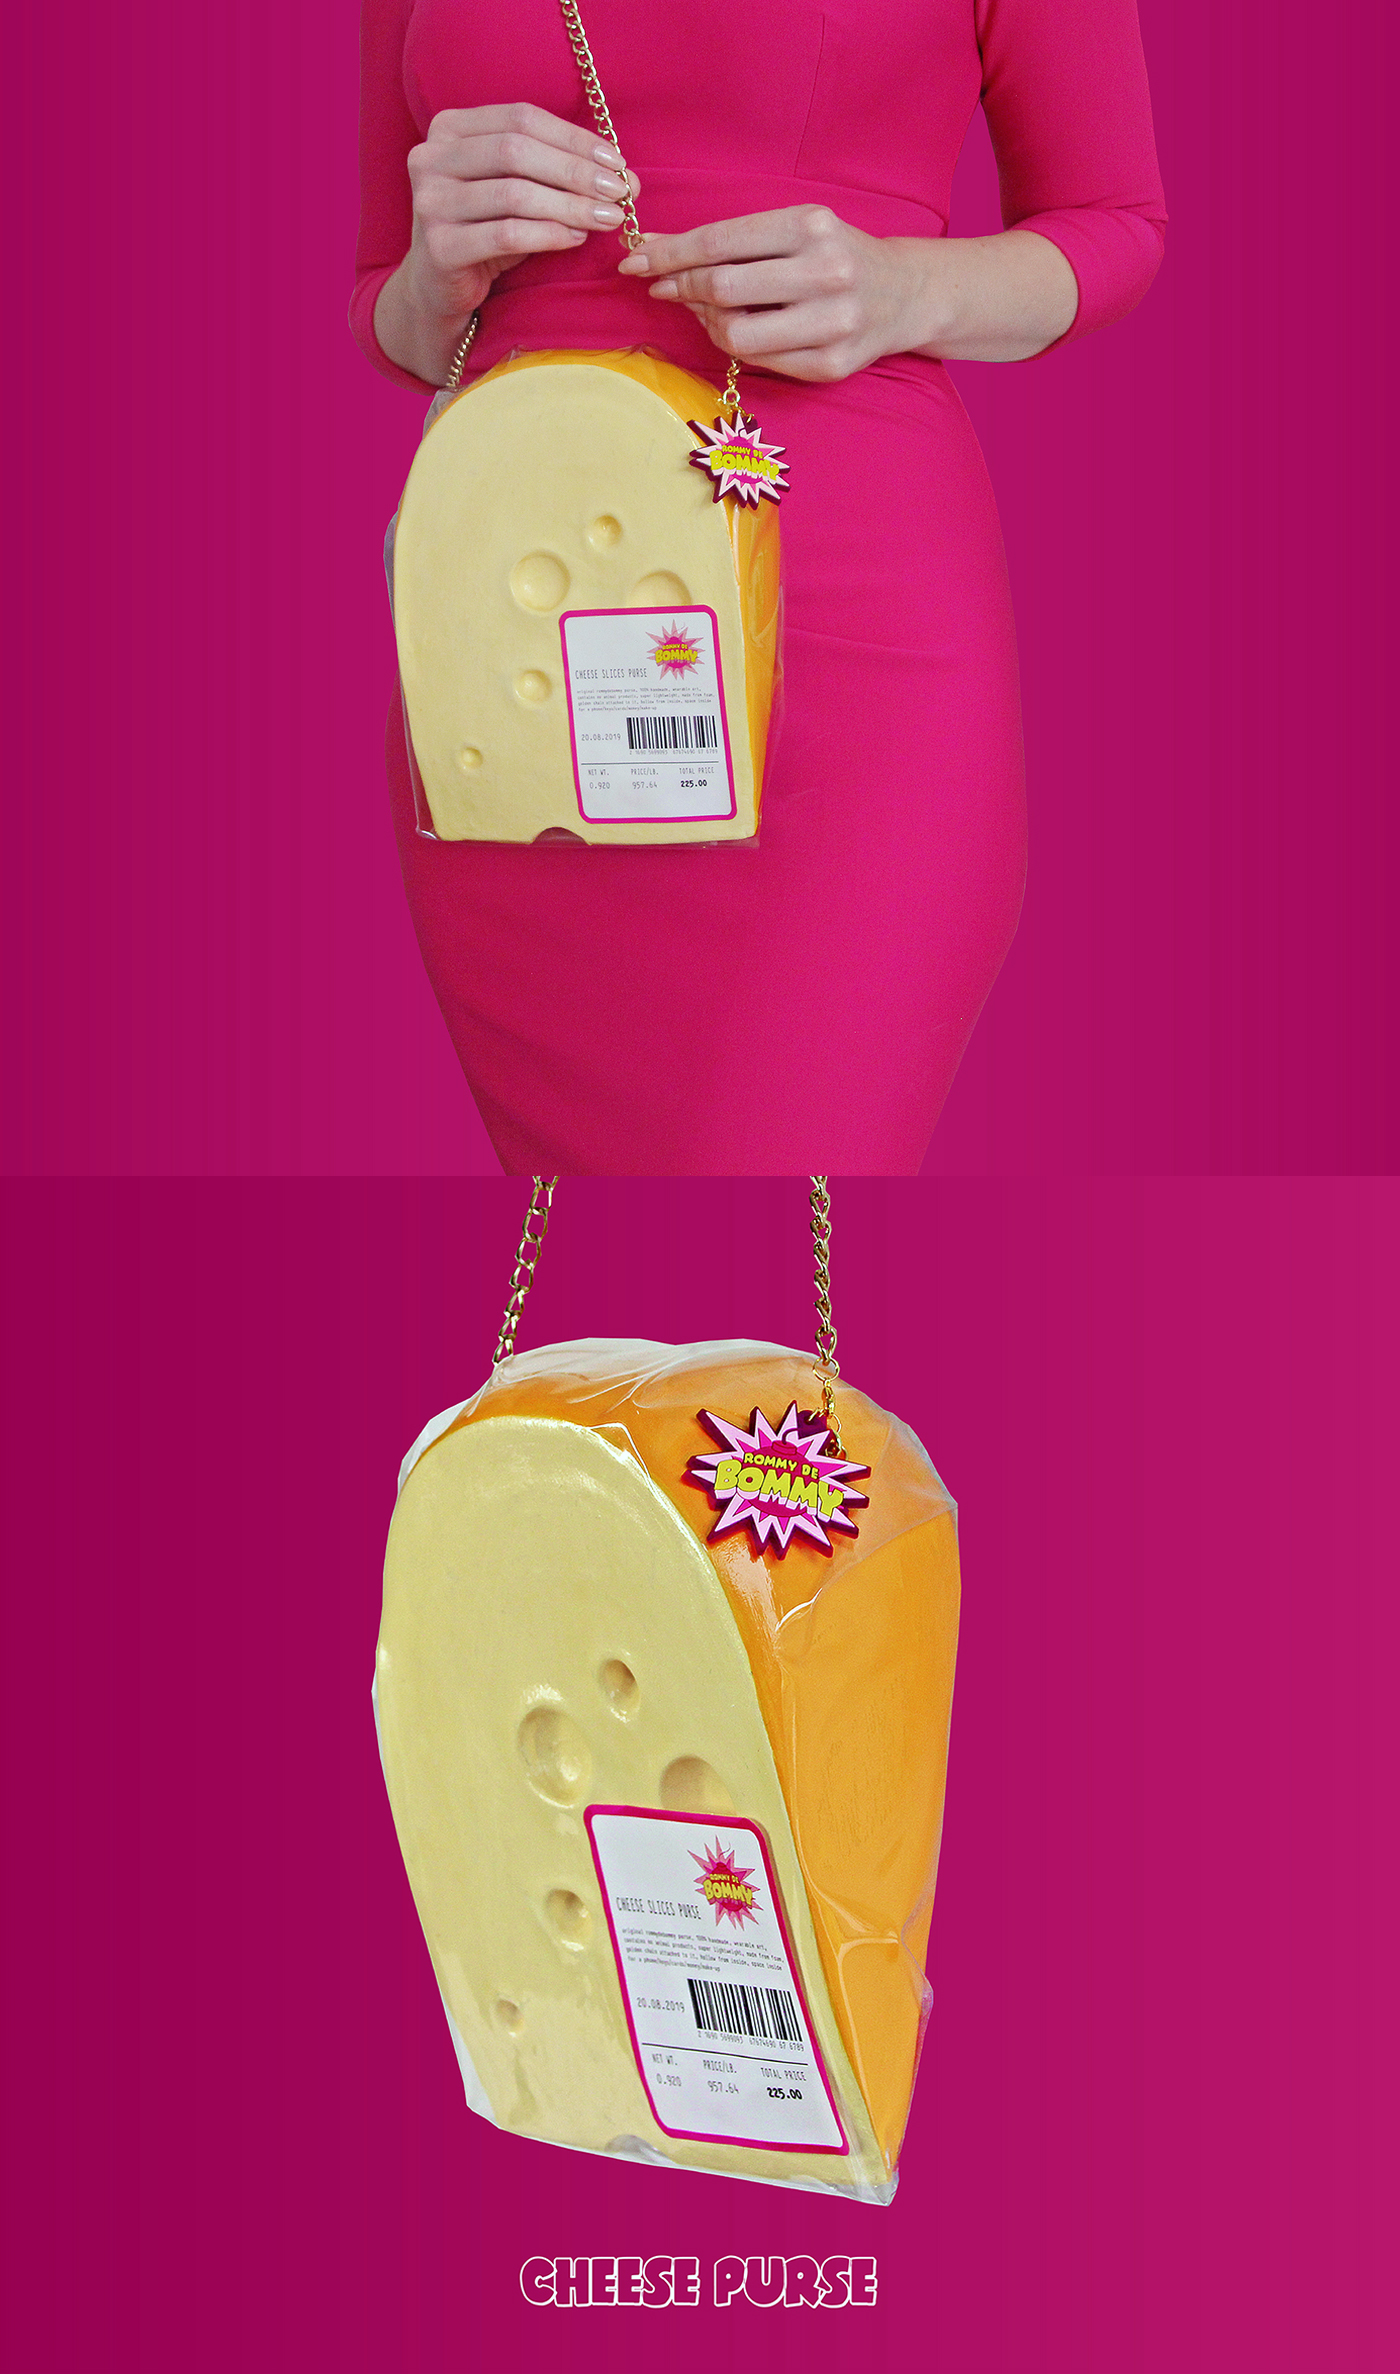 RommyDeBommy Swiss Cheese Purse